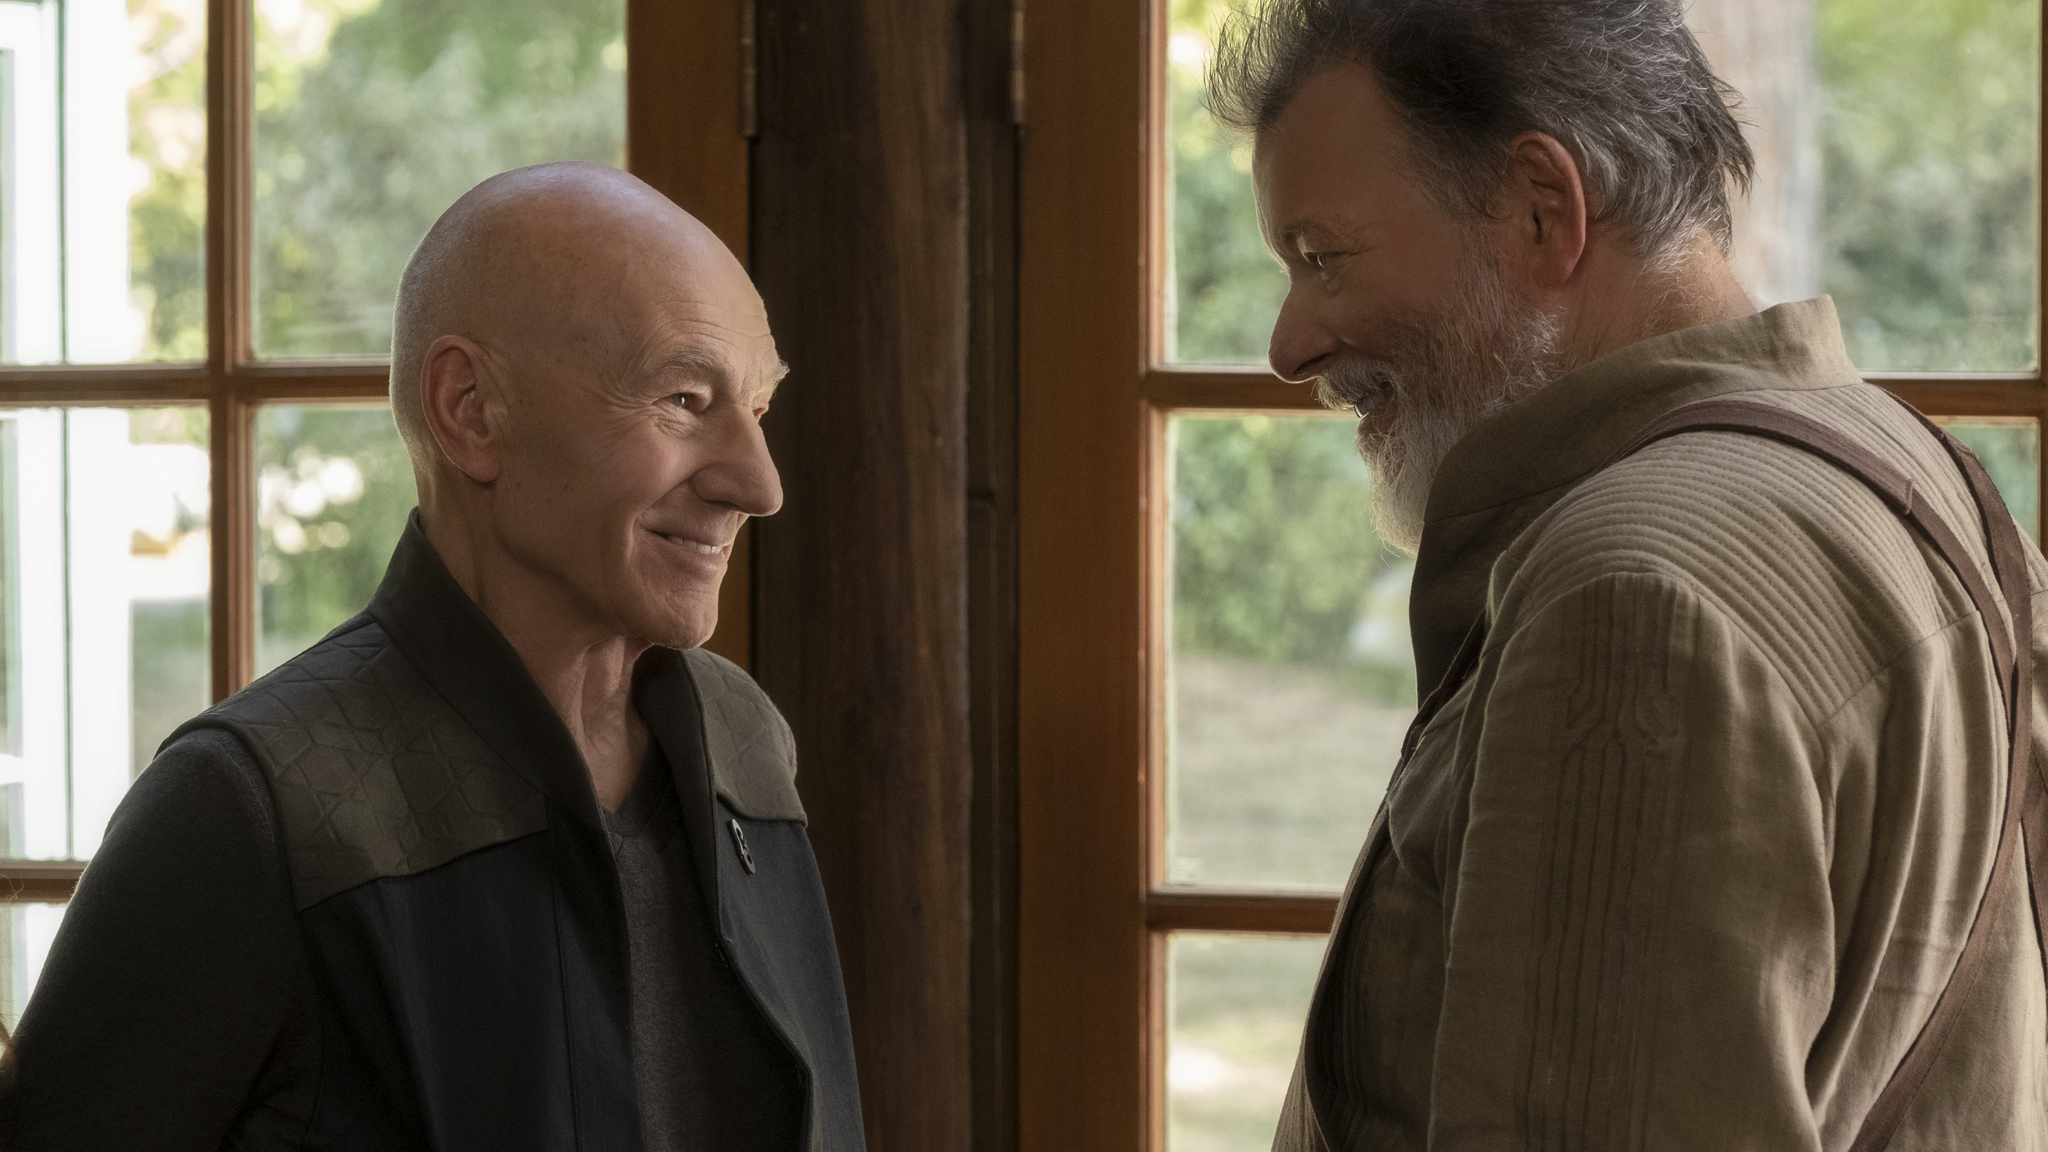 When will Star Trek: Picard episode 2 be released?